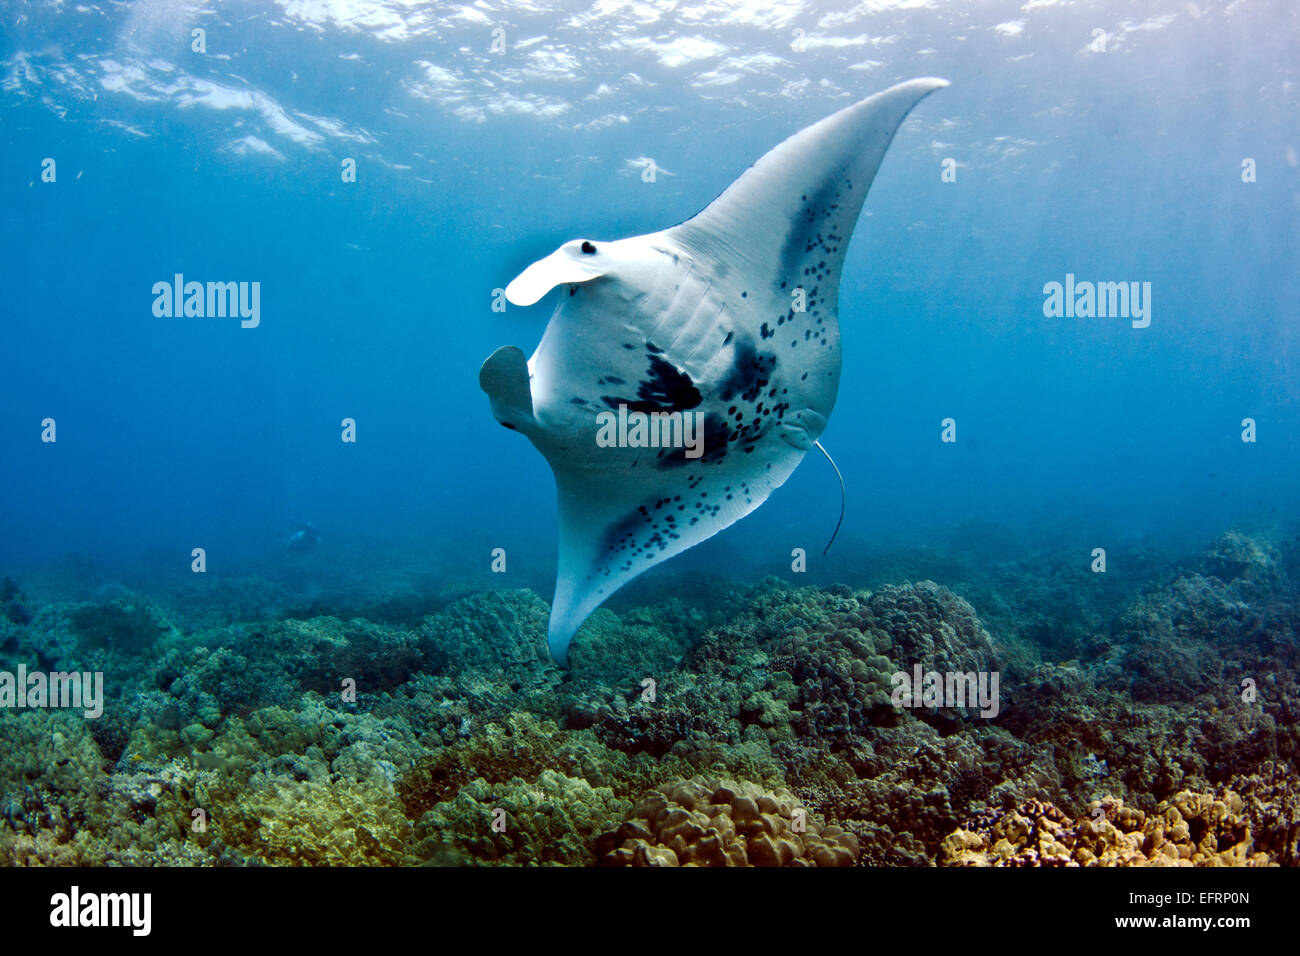 A coastal manta ray (Manta alfredi) swoops gracefully over the reef offshore from Kona, Hawaii - Stock Image